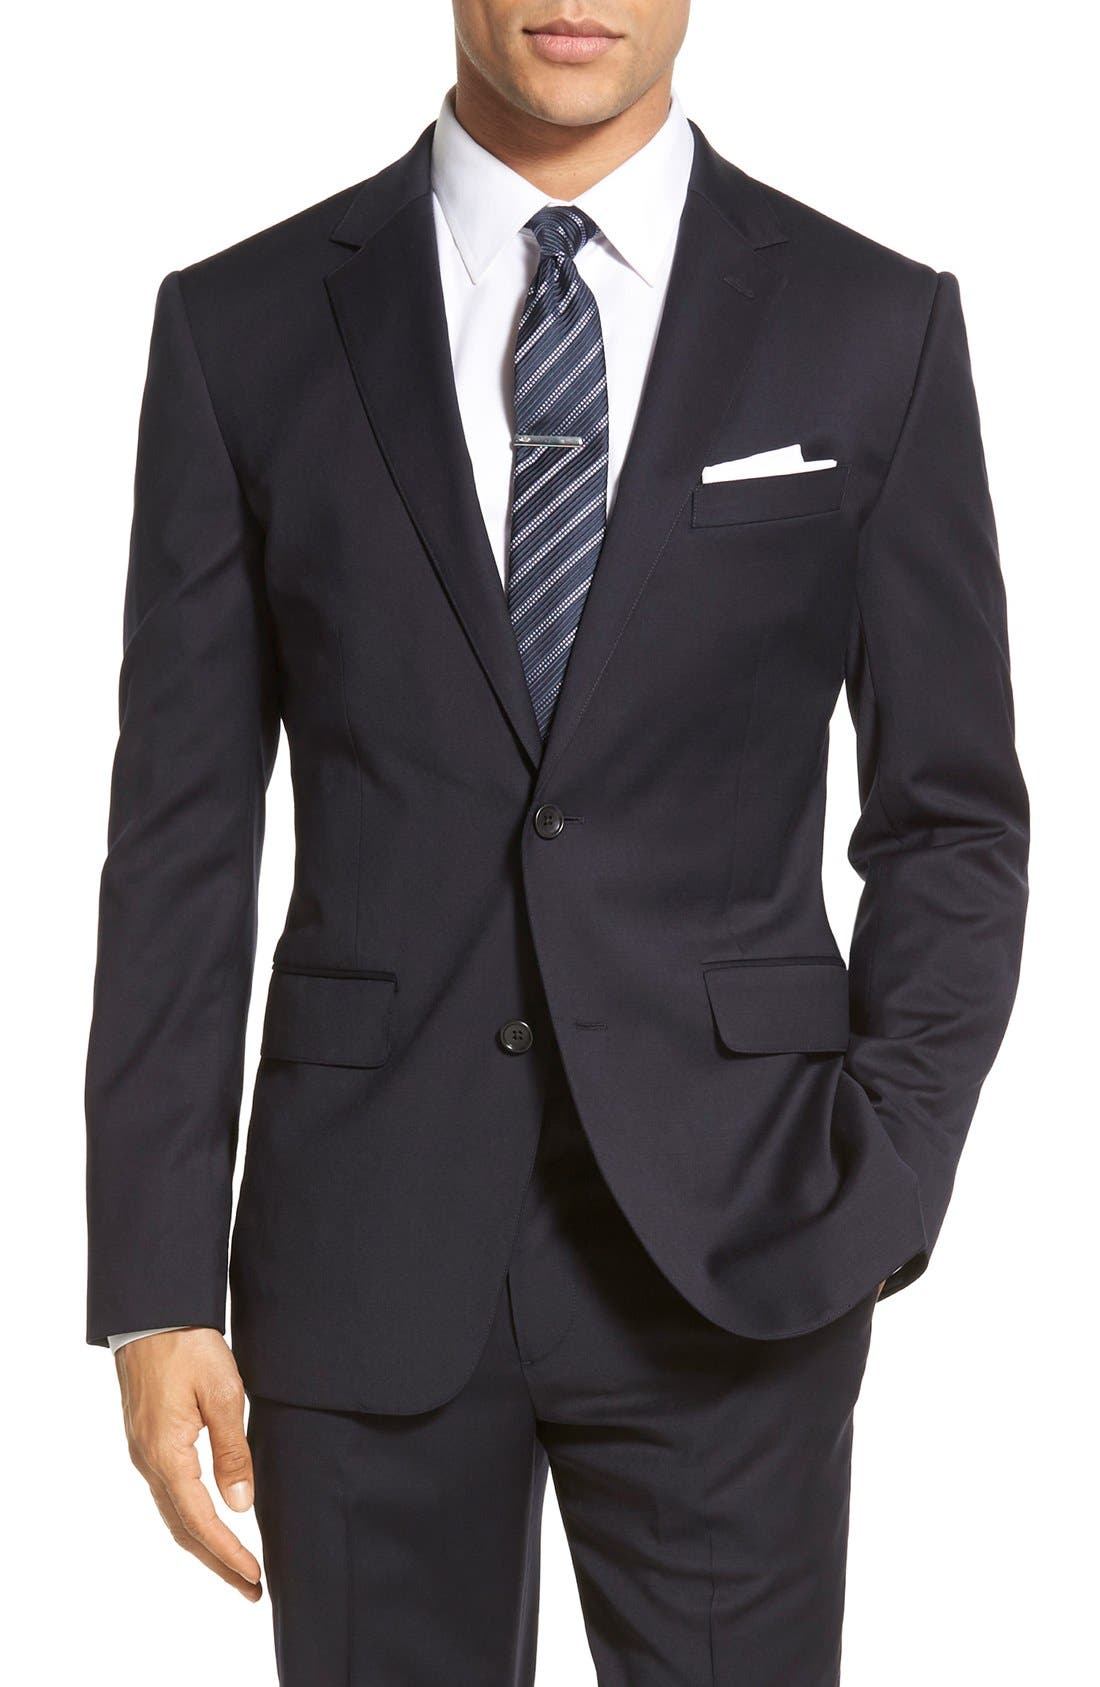 Jetsetter Trim Fit Solid Stretch Wool Sport Coat,                             Main thumbnail 1, color,                             400